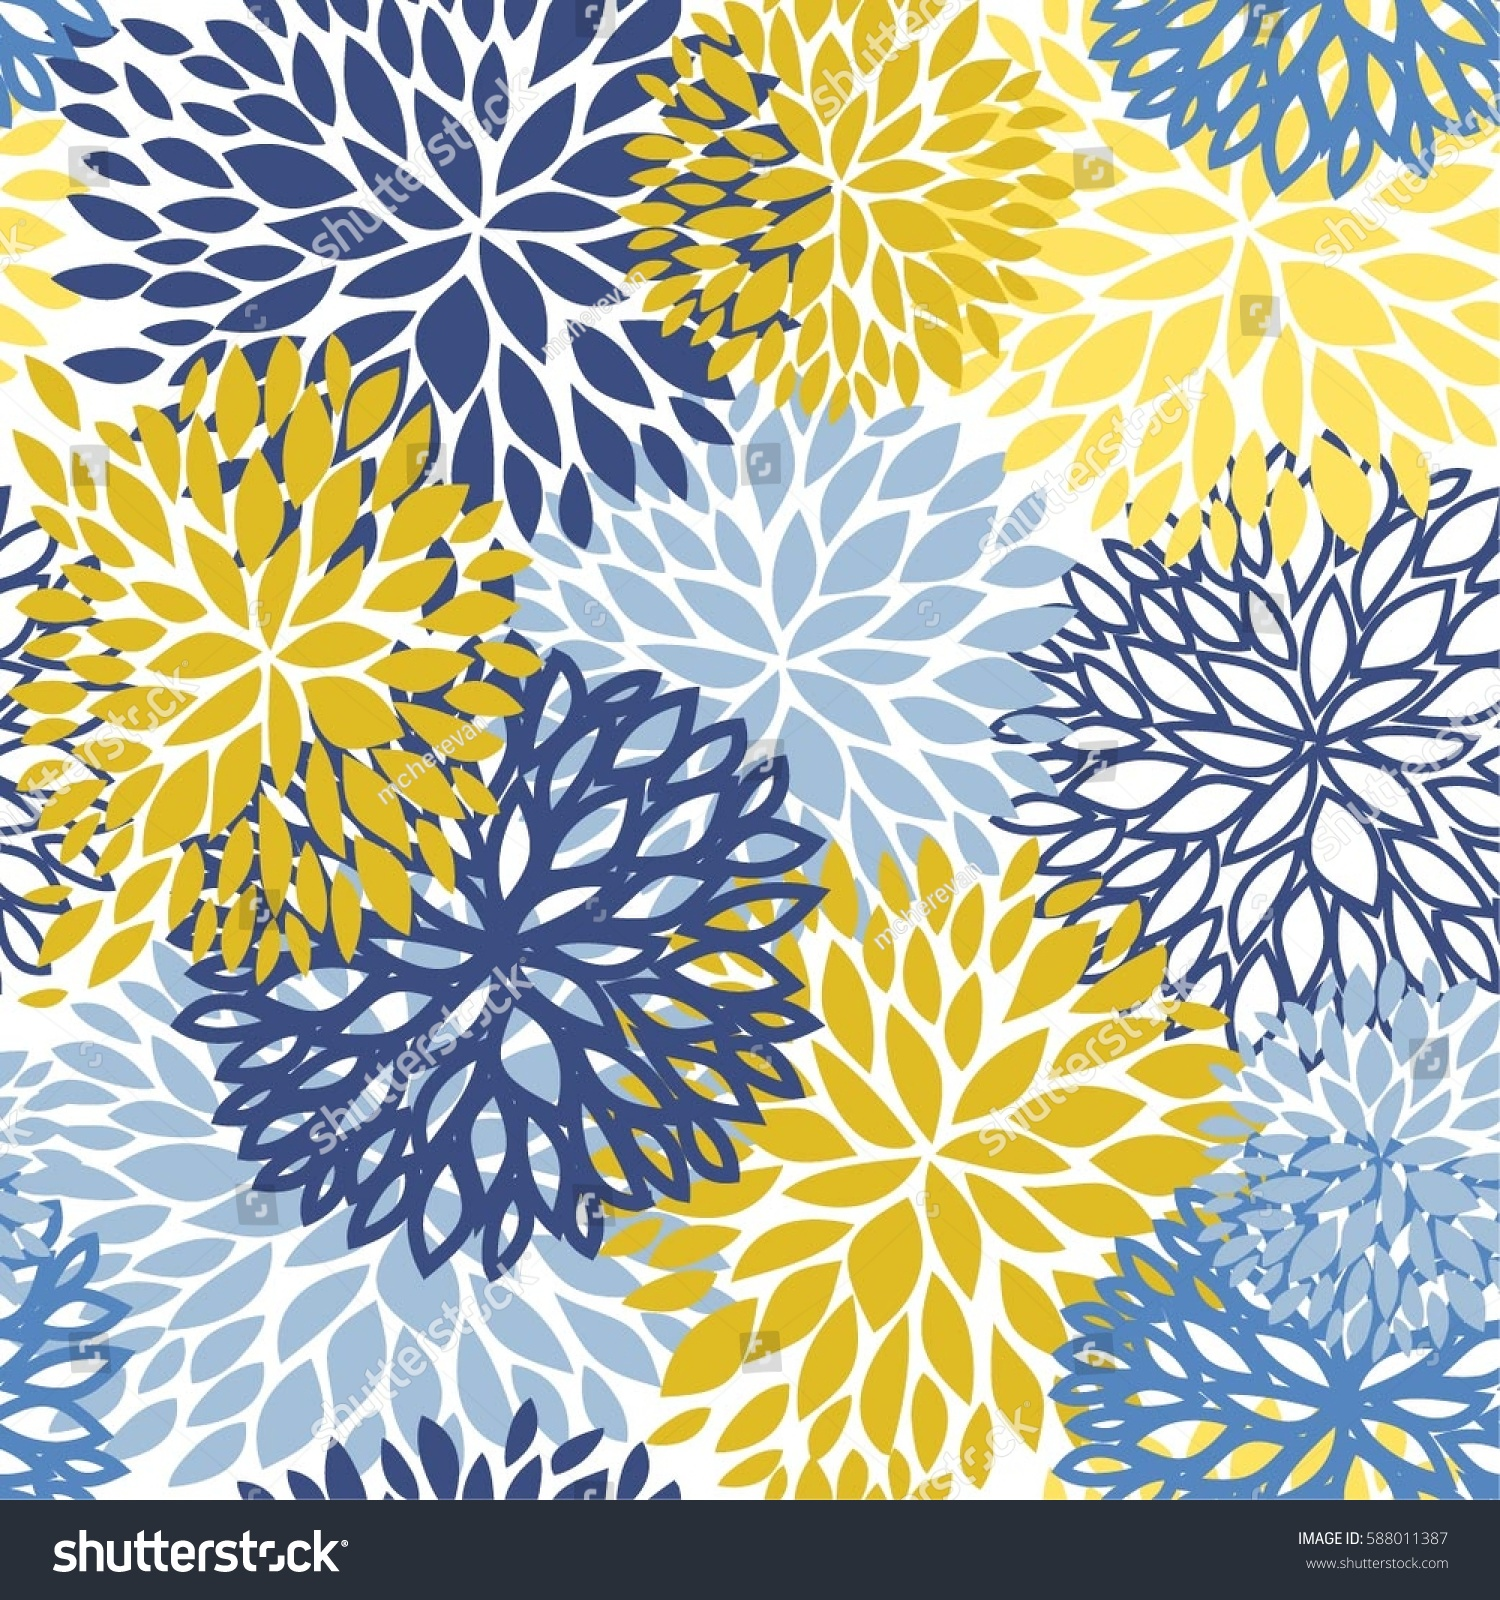 Pink floral seamless vector background floral hrysanthemum seamless - Spring Flower Seamless Pattern Blue Yellow And Navy Chrysanthemum Flowers Background For Web